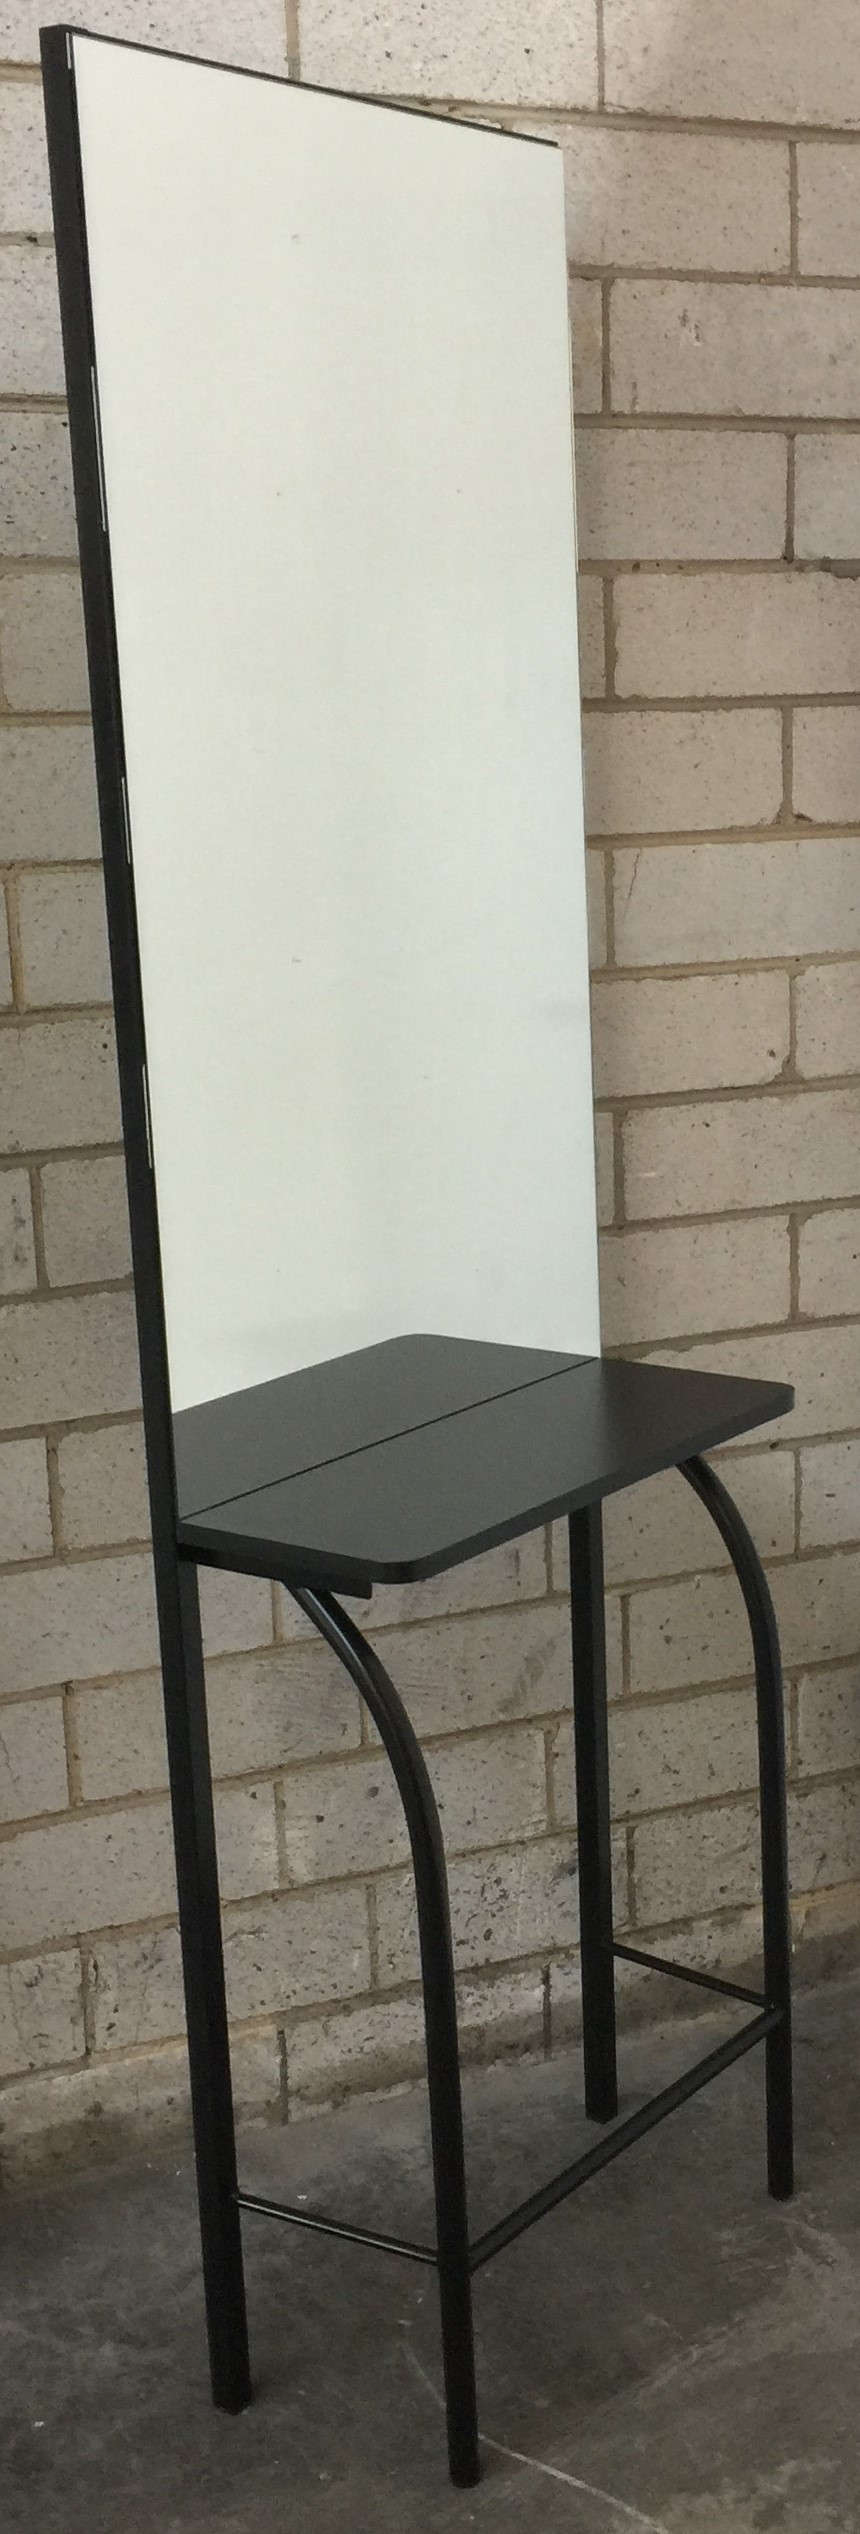 Australian Made Freestanding Workstation